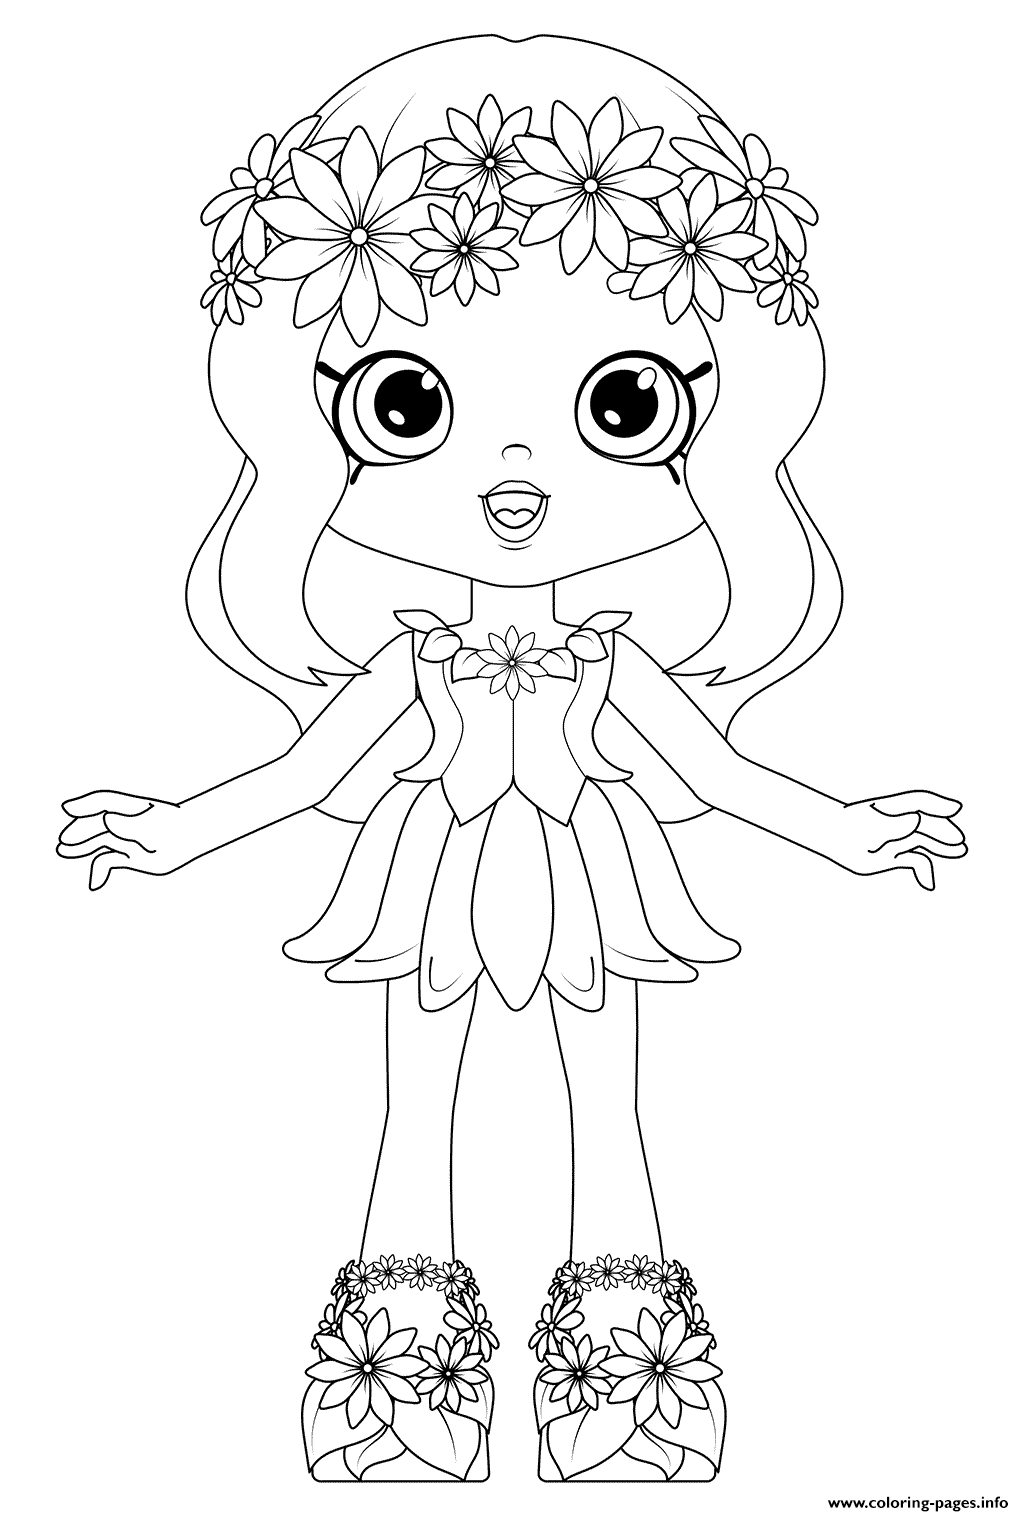 photo regarding Daisy Printable named Shoppies Dolls Daisy Petals Coloring Web pages Printable